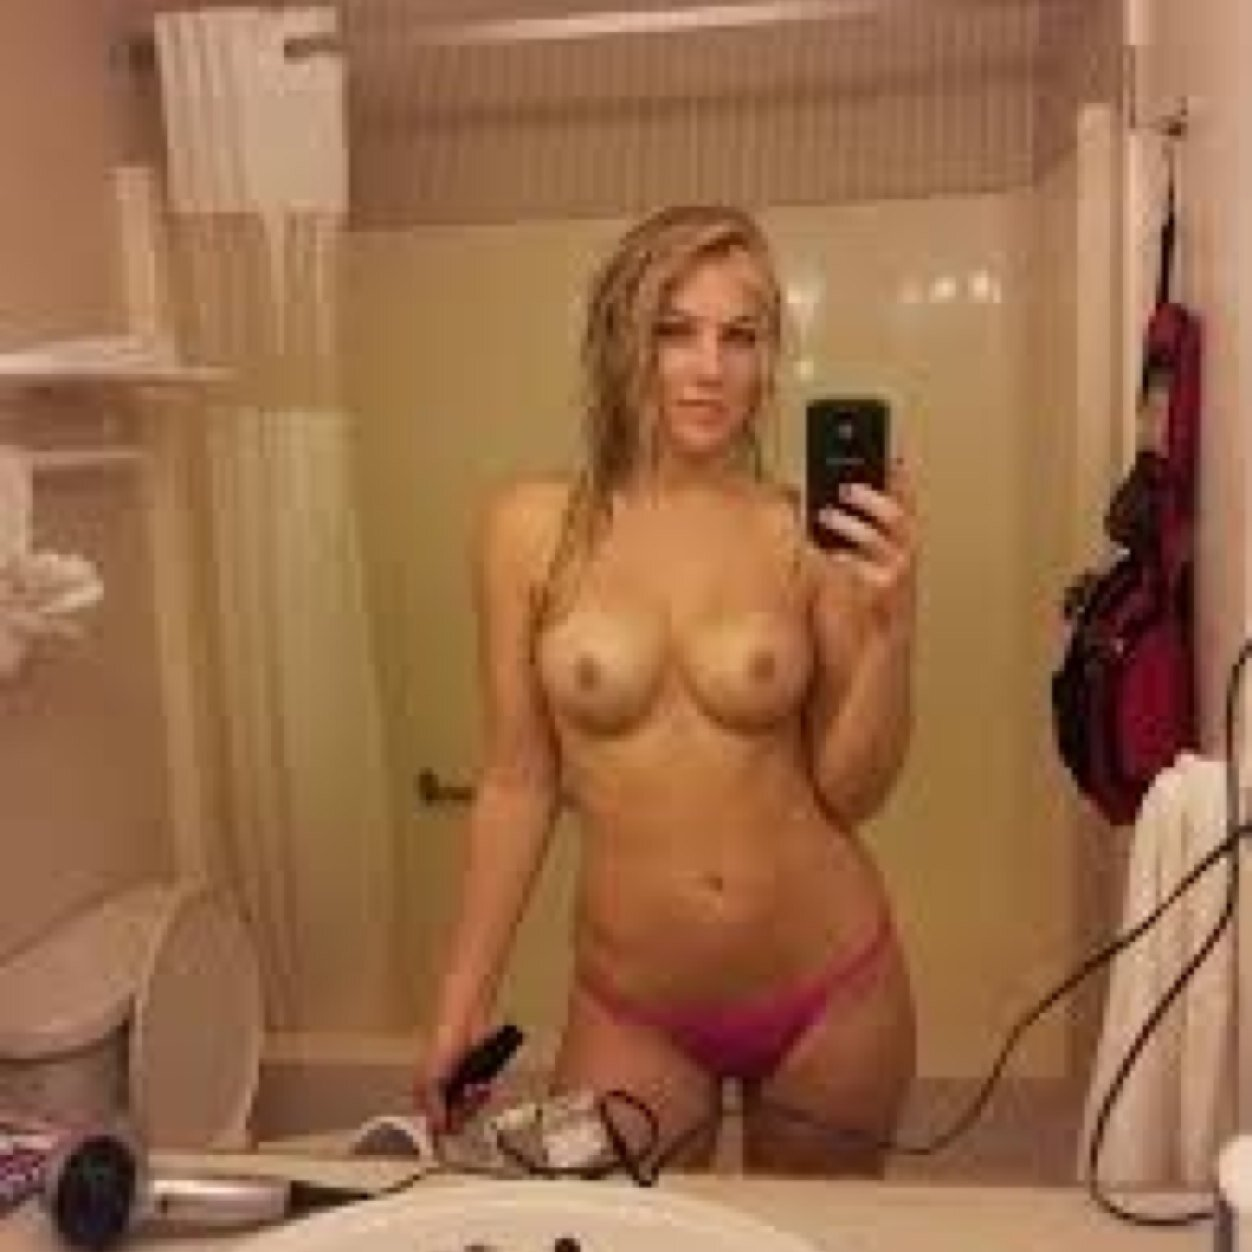 blonde-girl-takes-naked-selfie